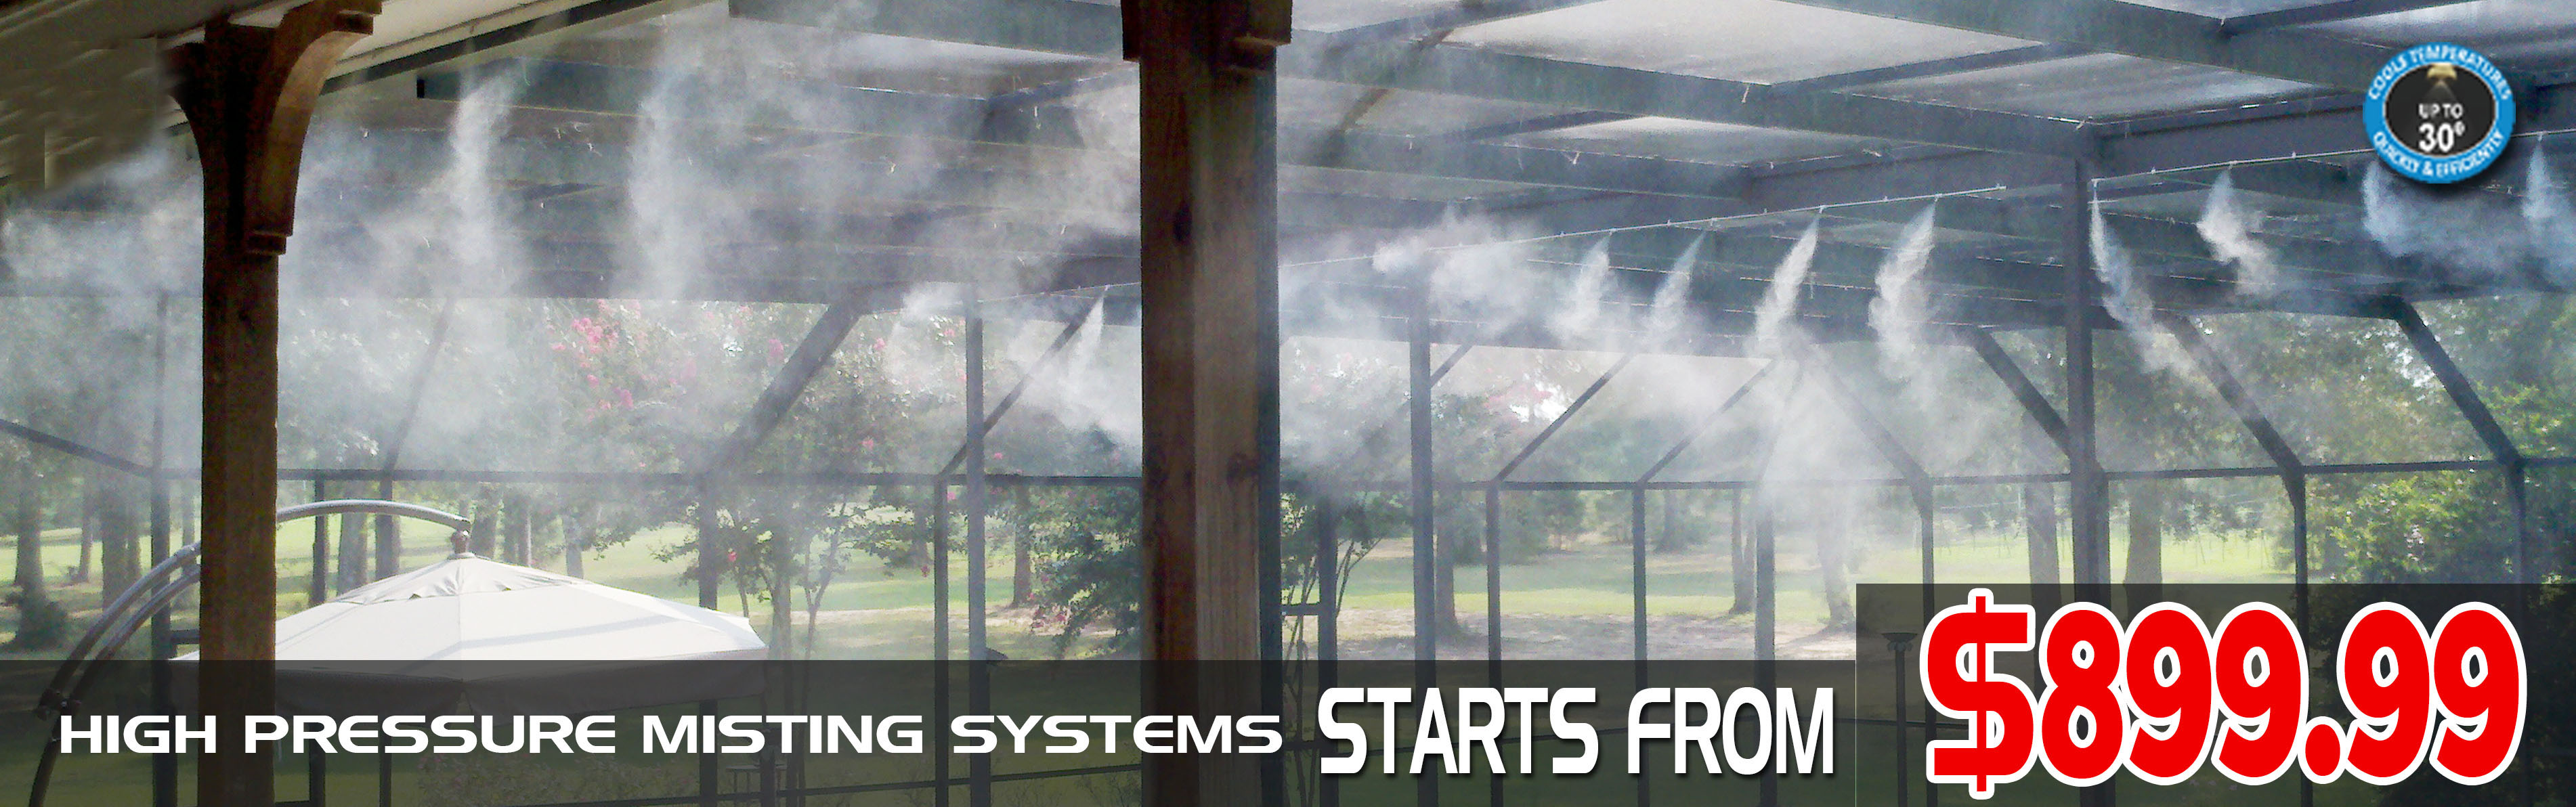 High Pressure Misting Systems